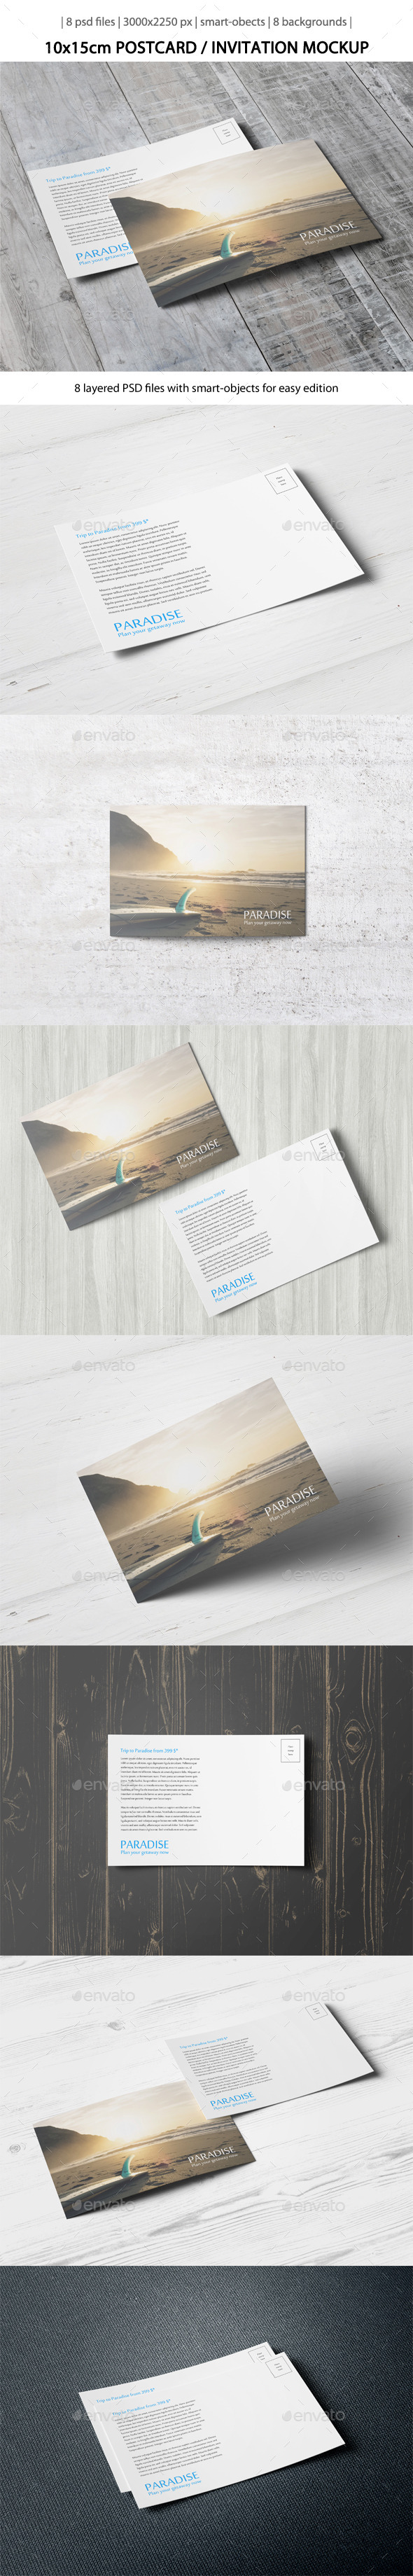 GraphicRiver Postcard Invitation Mock-Up [10x15cm] 10799810